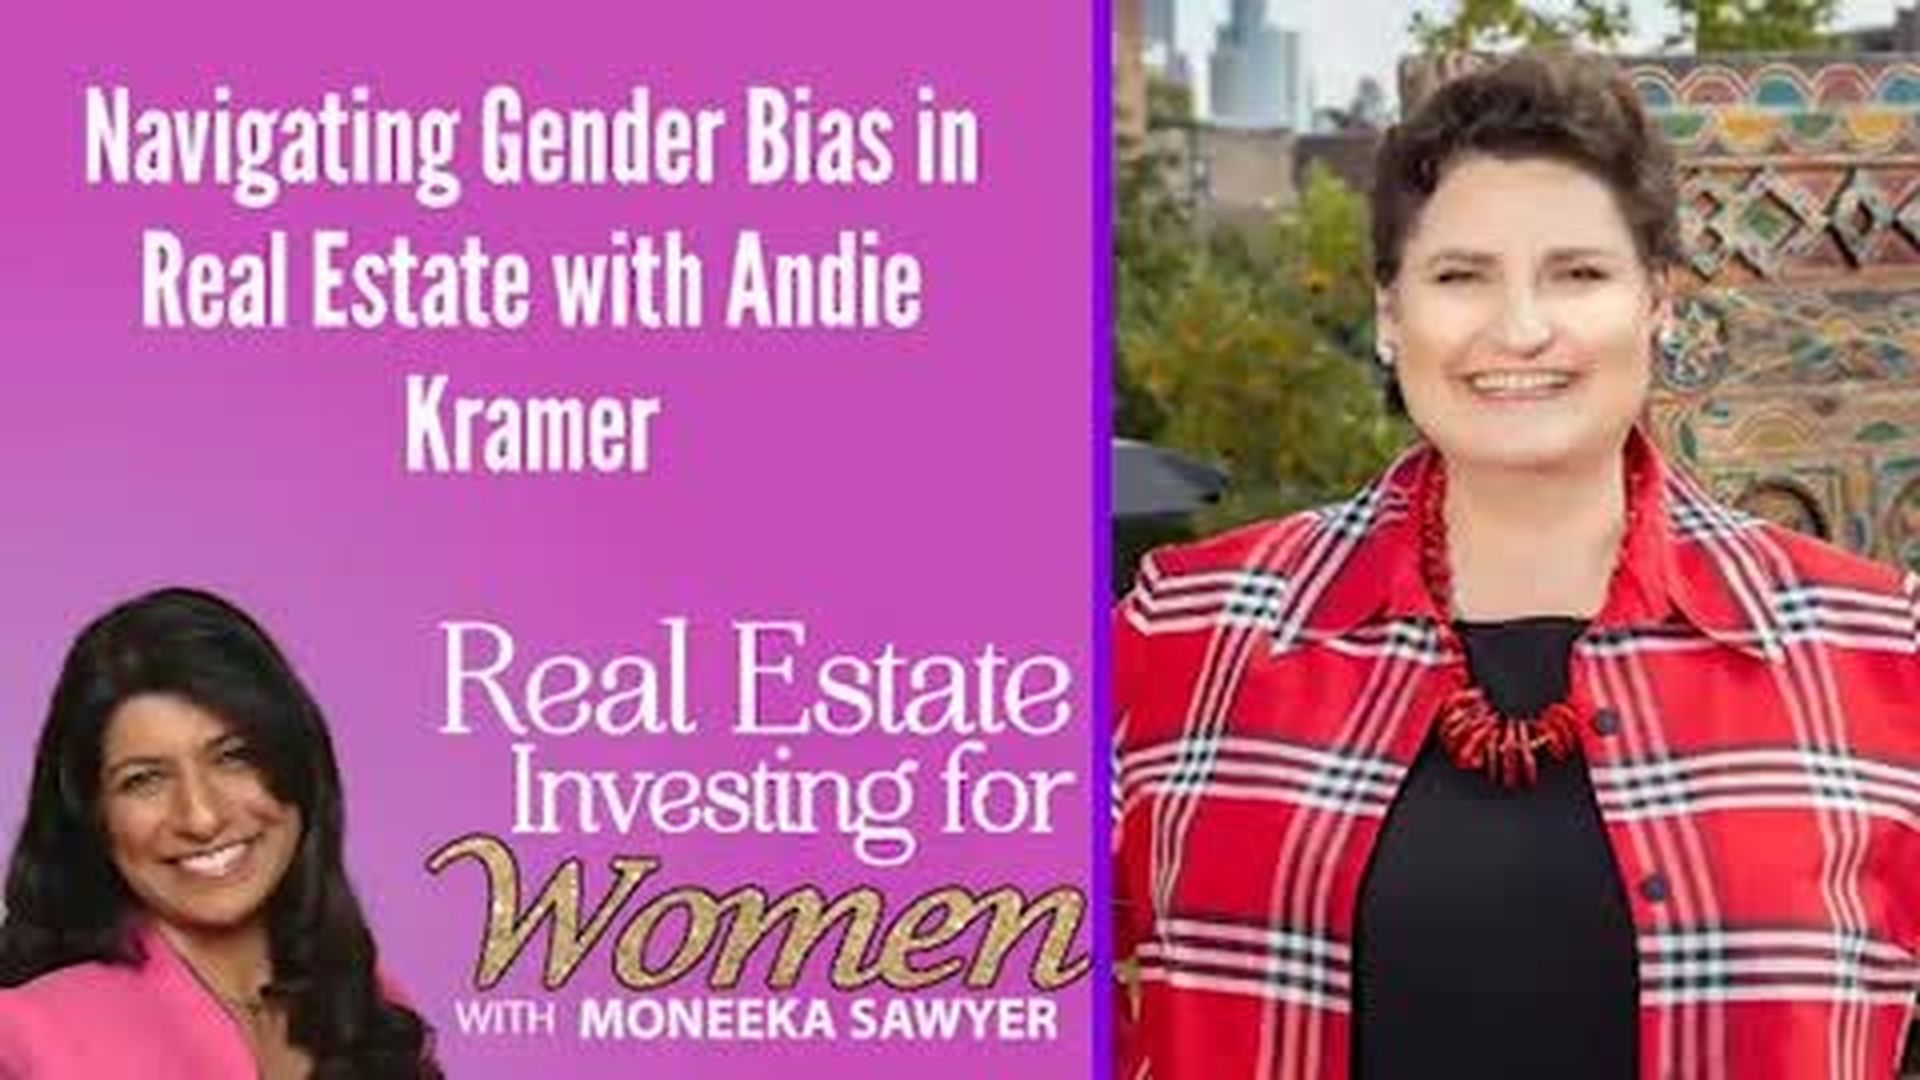 Navigating Gender Bias in Real Estate with Andie Kramer - REAL ESTATE INVESTING FOR WOMEN EXTRA